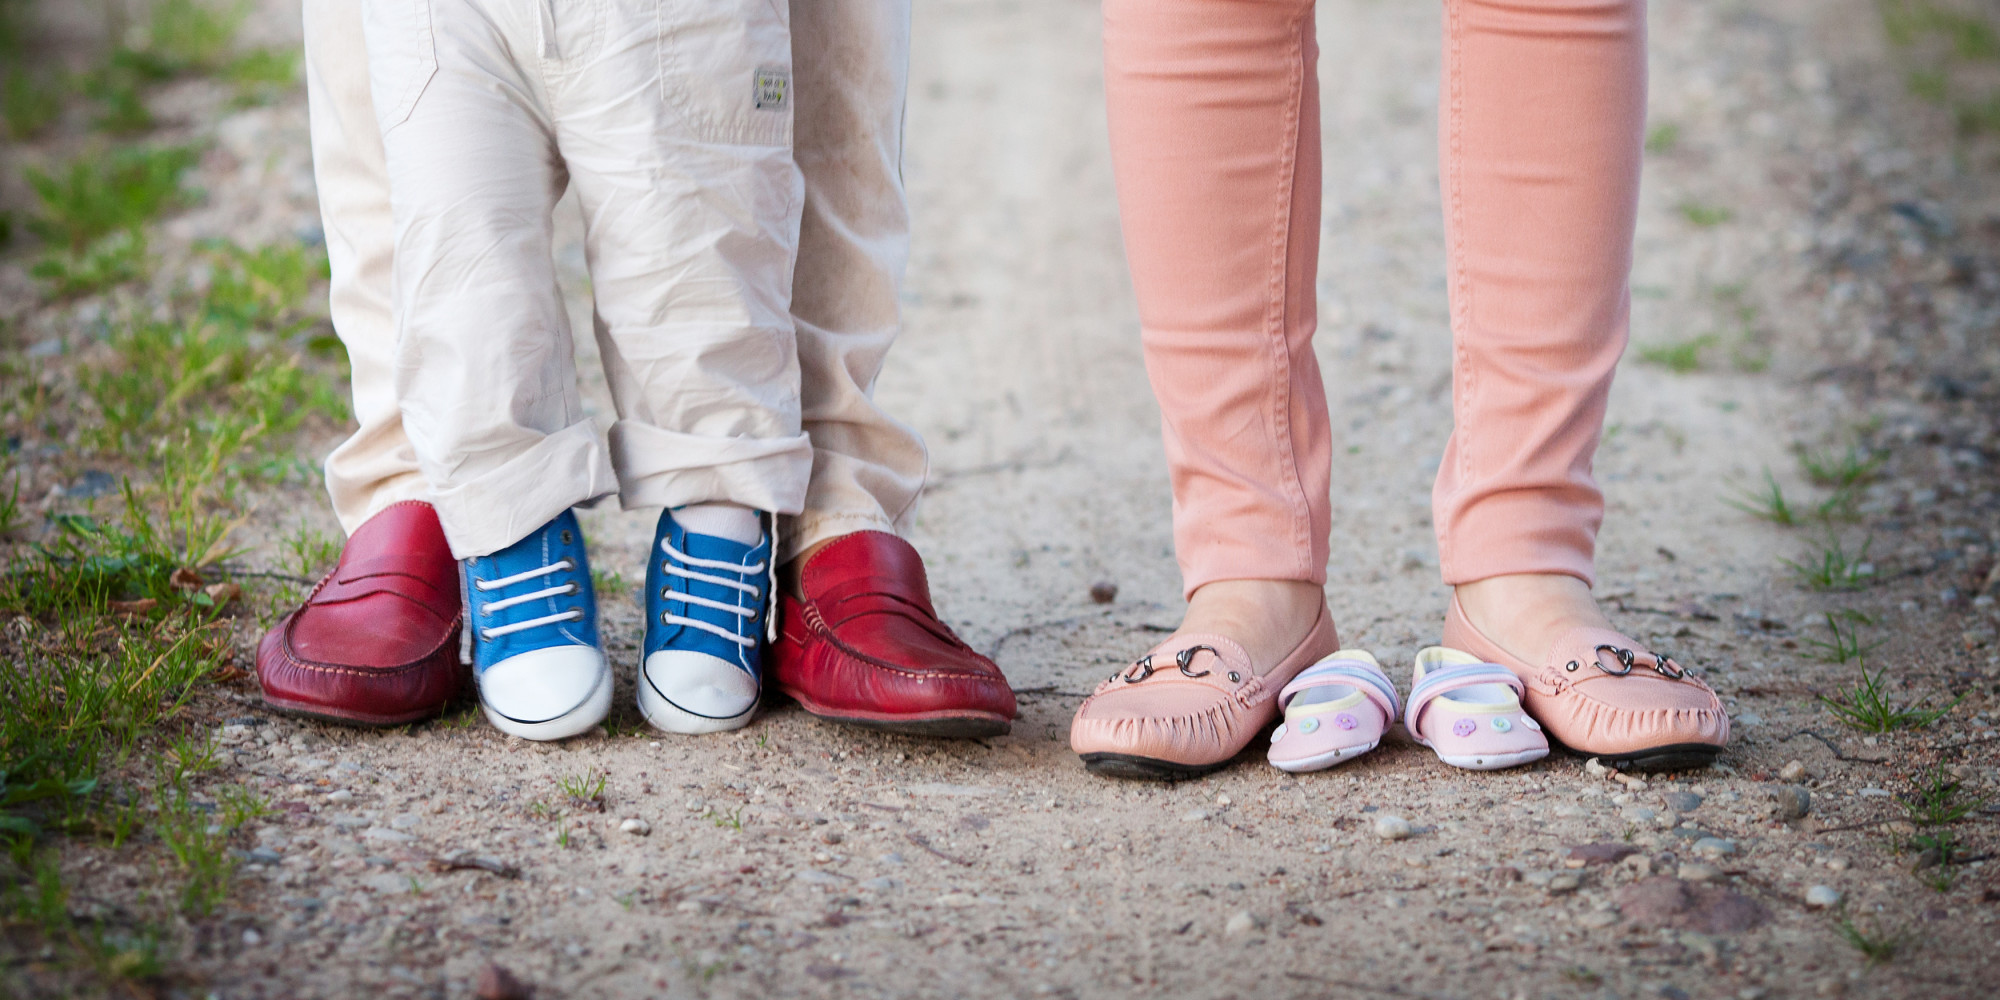 Pregnant, But Not Barefoot: Your Guide To Choosing The Best Maternity Shoes